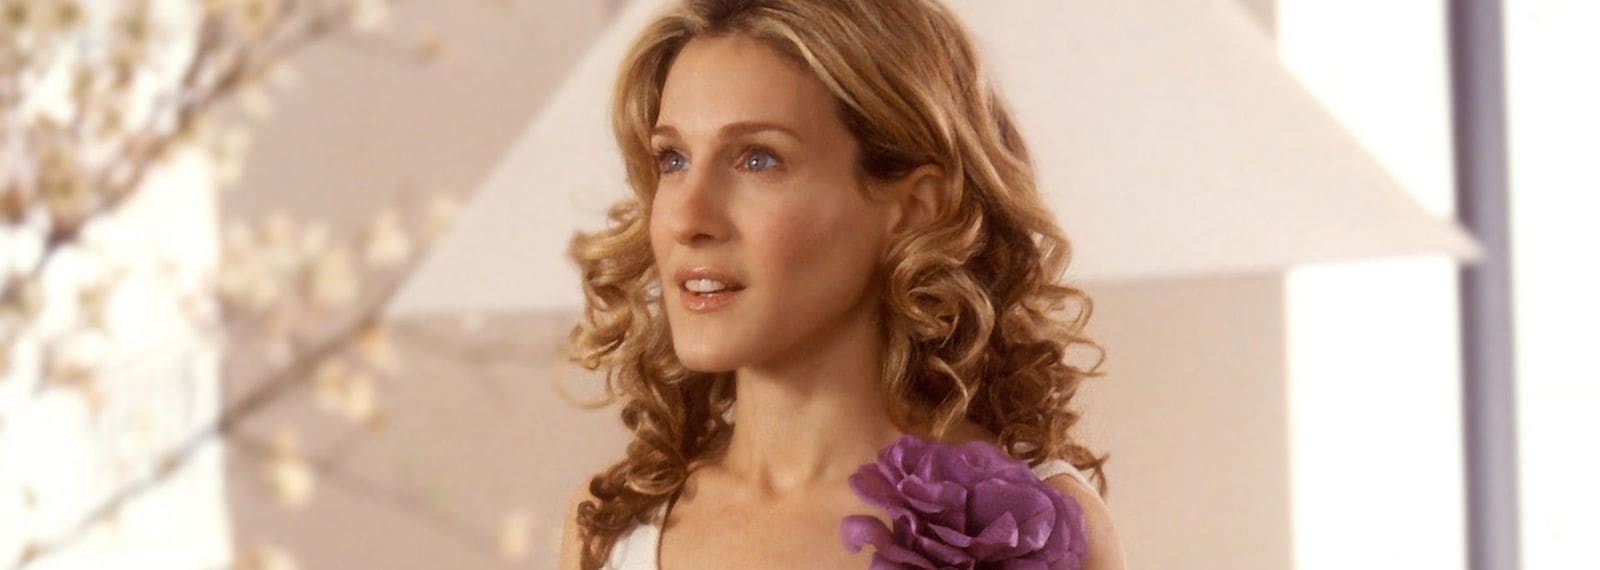 Carrie Bradshaw fiore